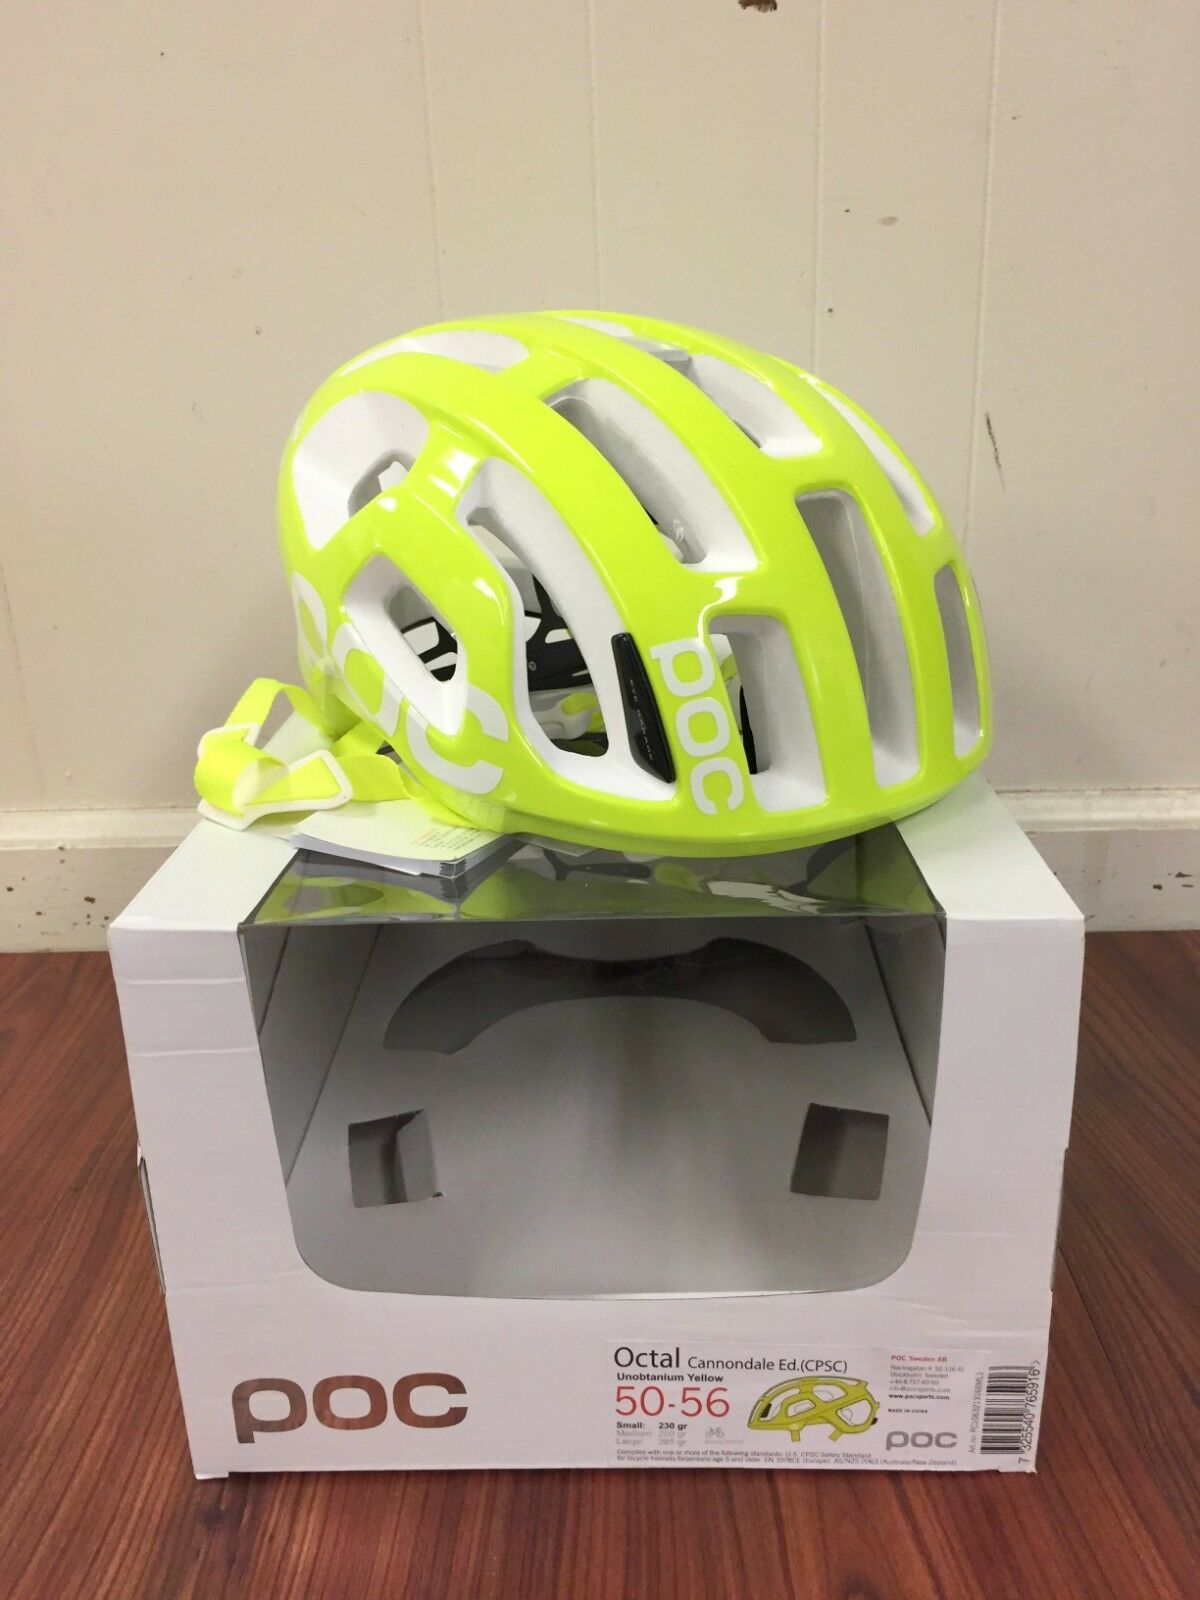 POC Octal Cannondale Edition CPSC Yellow Size Small 50-56 New in Box